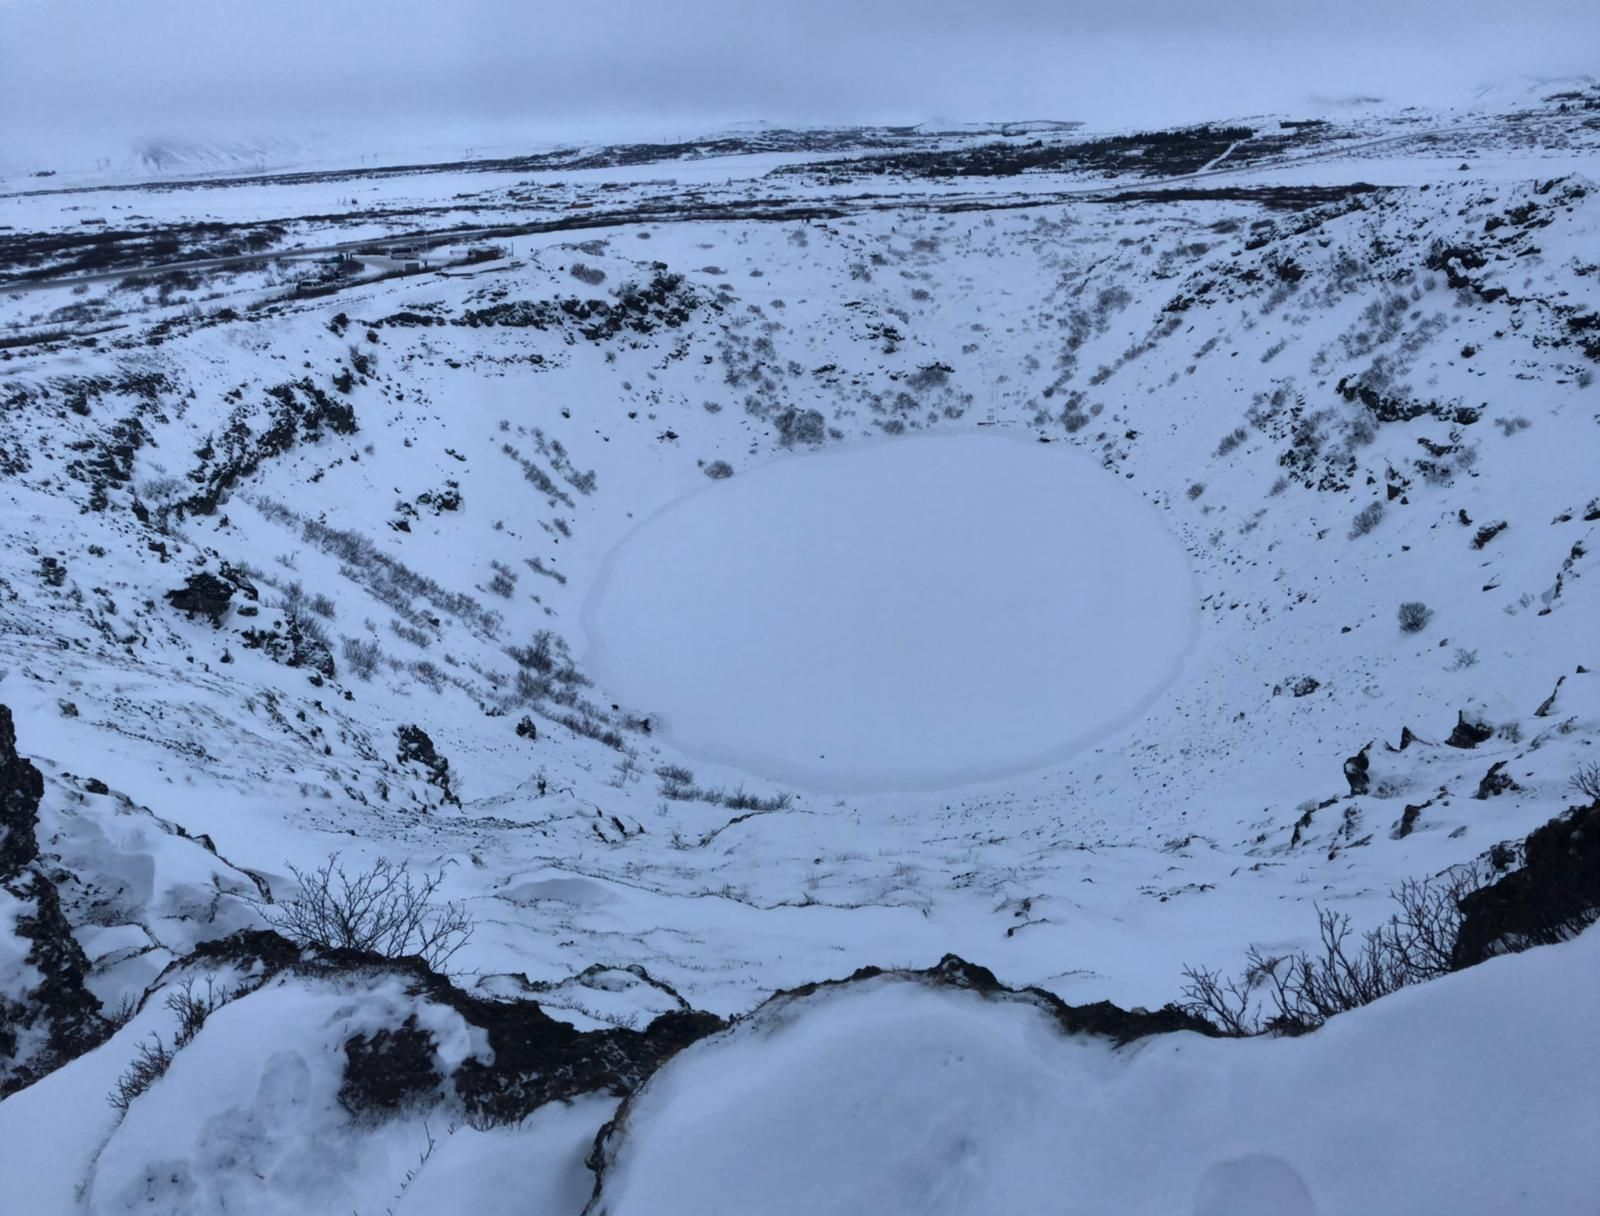 golden circle tour iceland kerid crater things to do in iceland in july